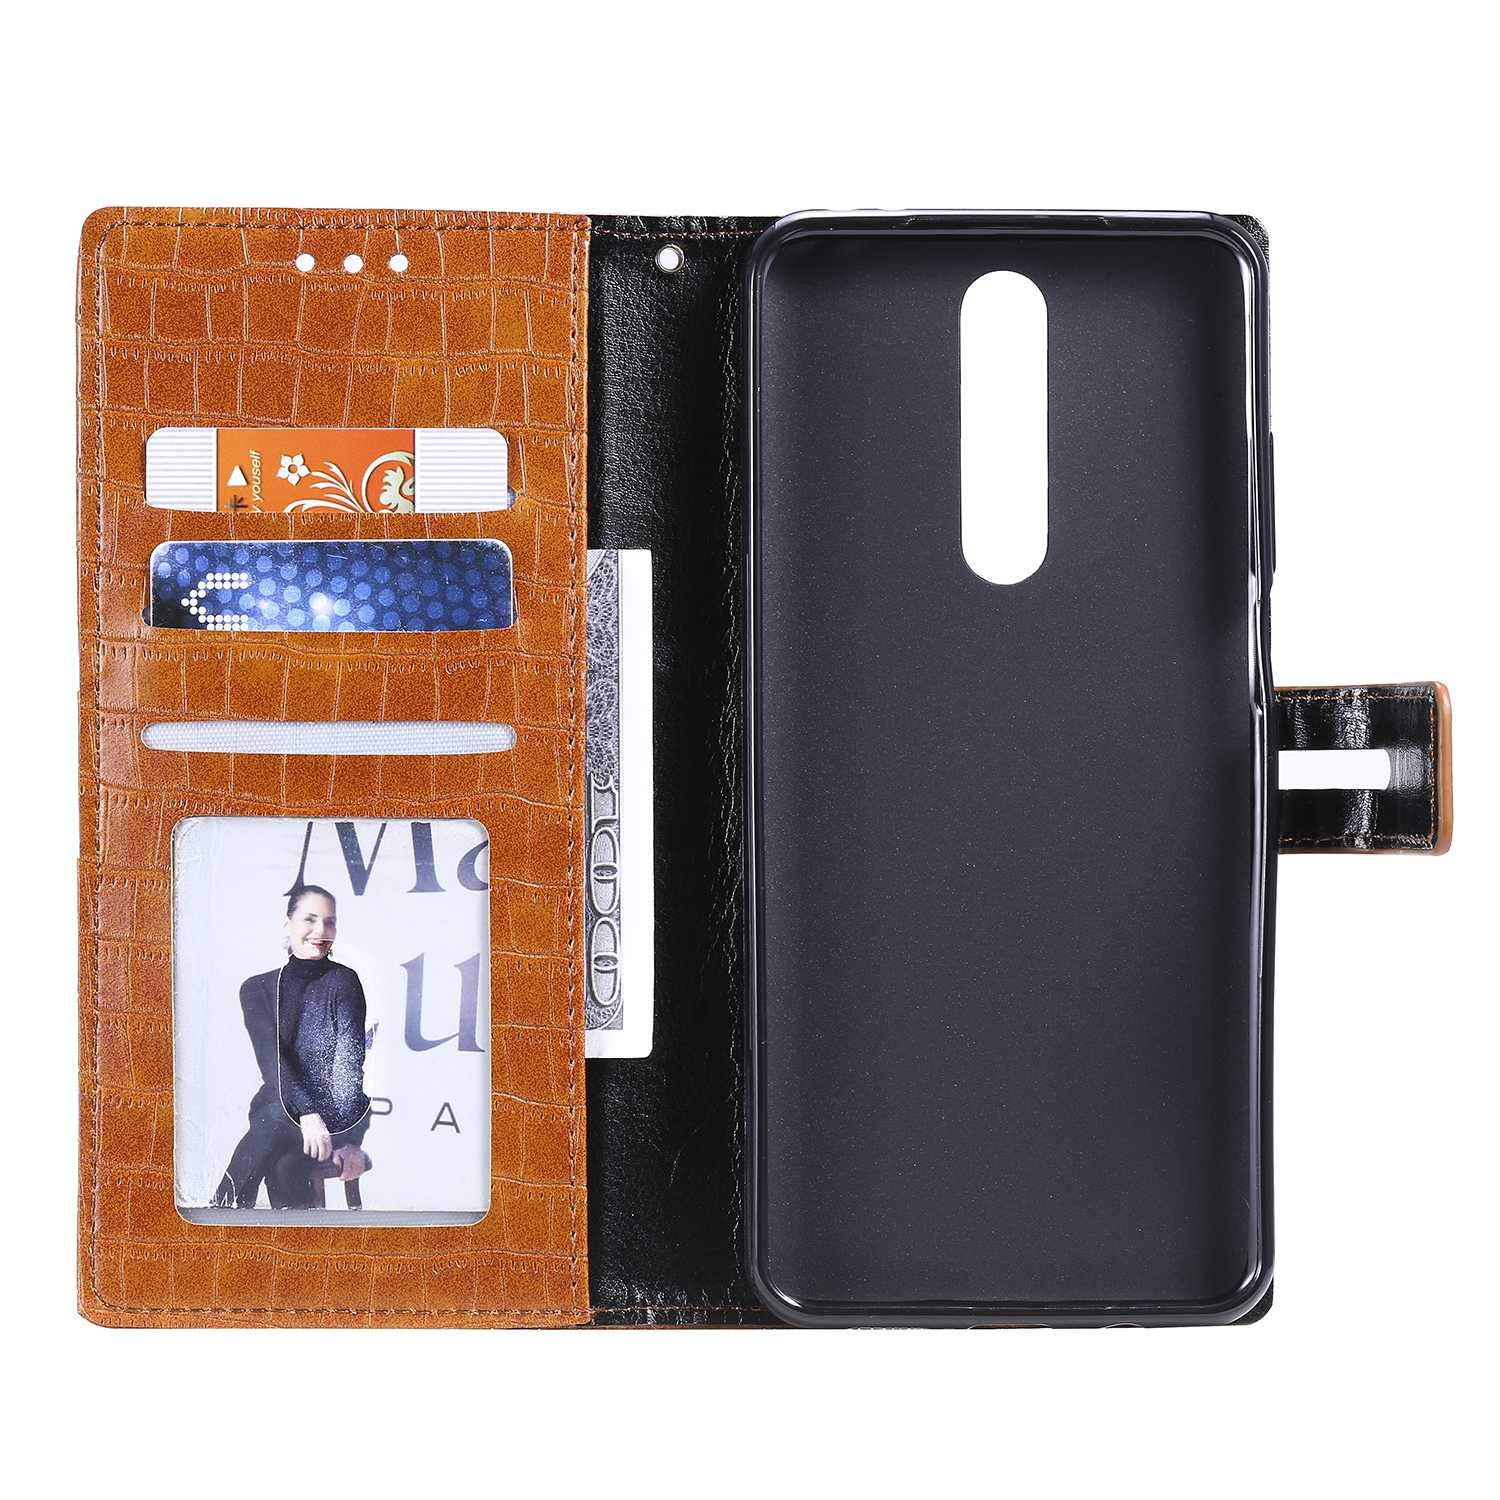 Red The Grafu Shockproof Flip Folio PU Leather Wallet Cover for Xiaomi Redmi Note 8 Xiaomi Redmi Note 8 Case Book Style Case with Card Holder and Magnetic Closure